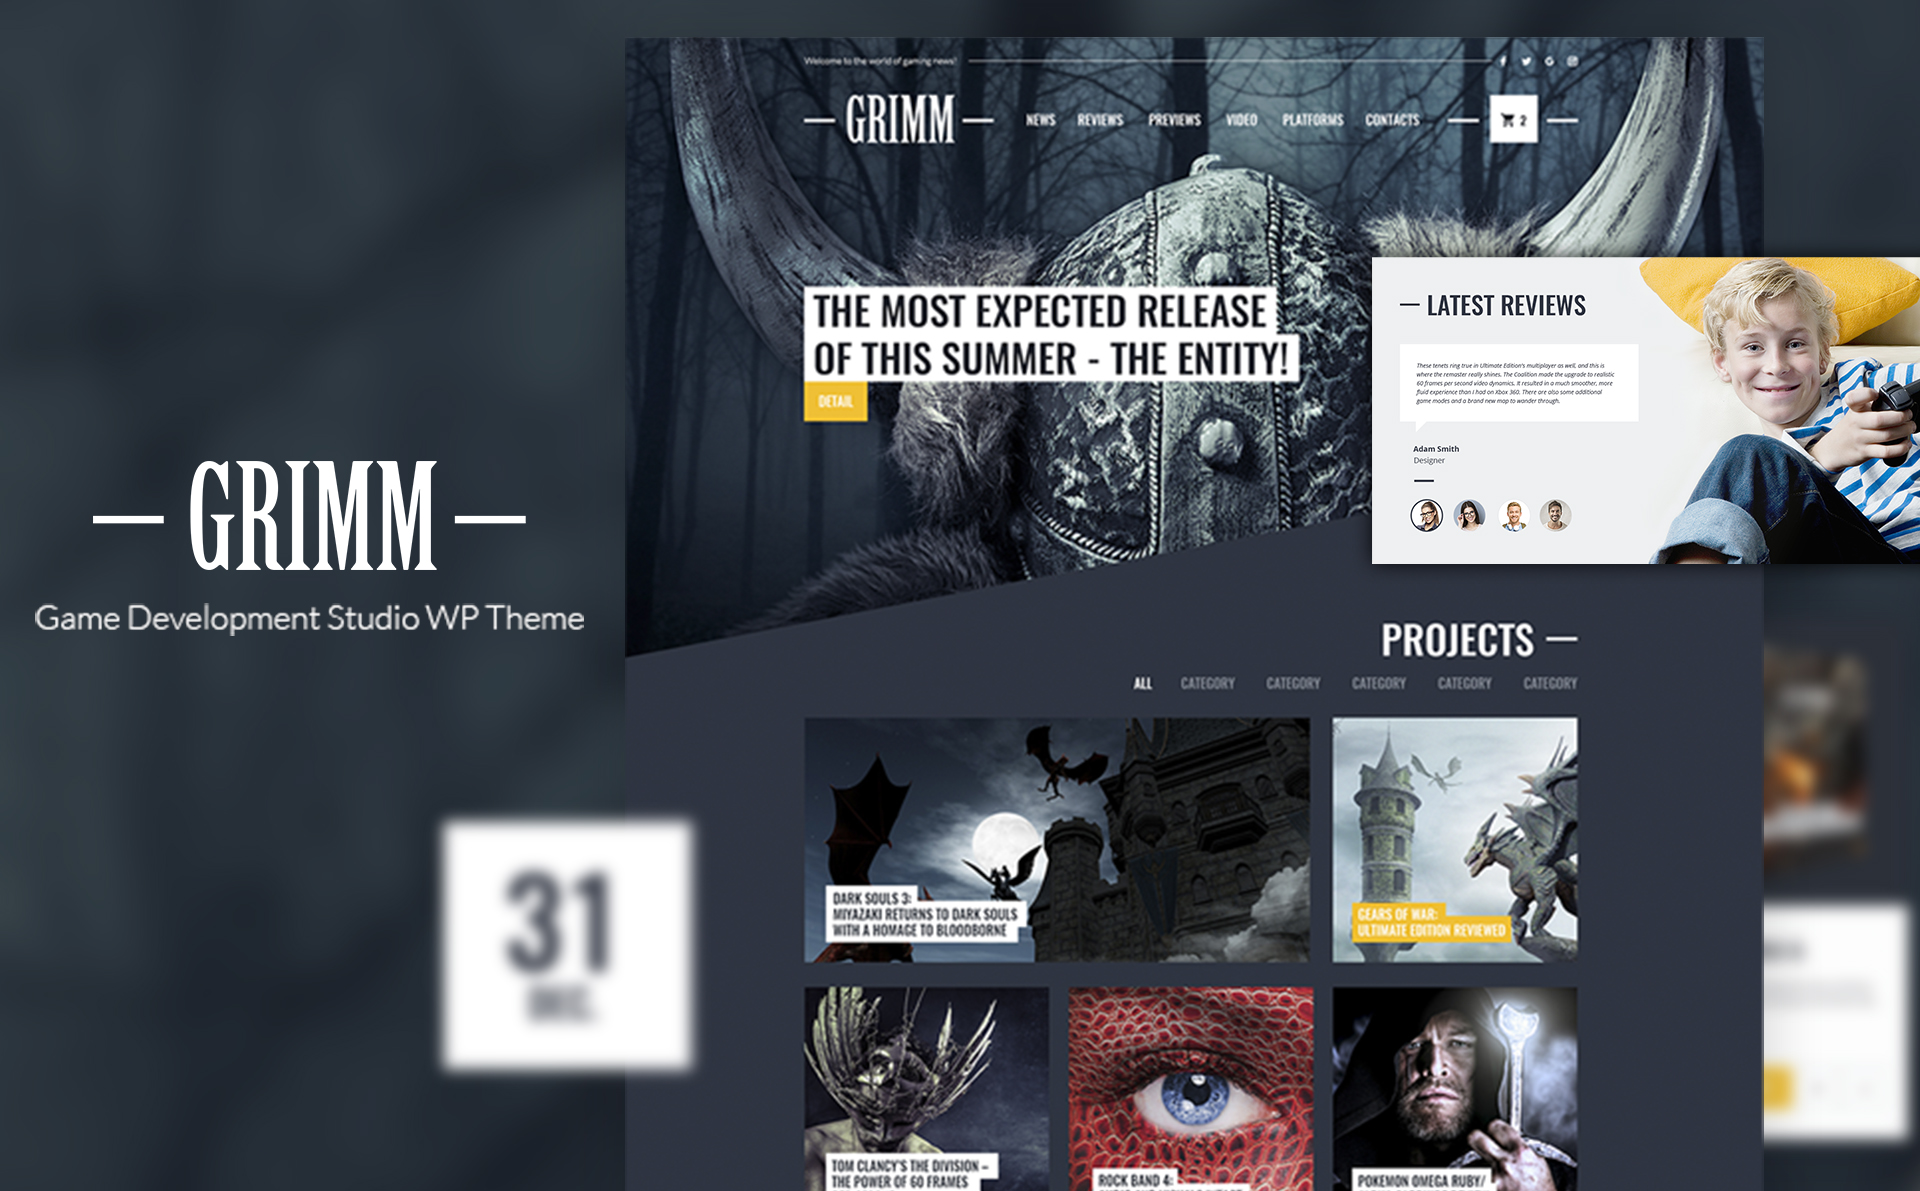 GRIMM lite - Game Development Studio №66471